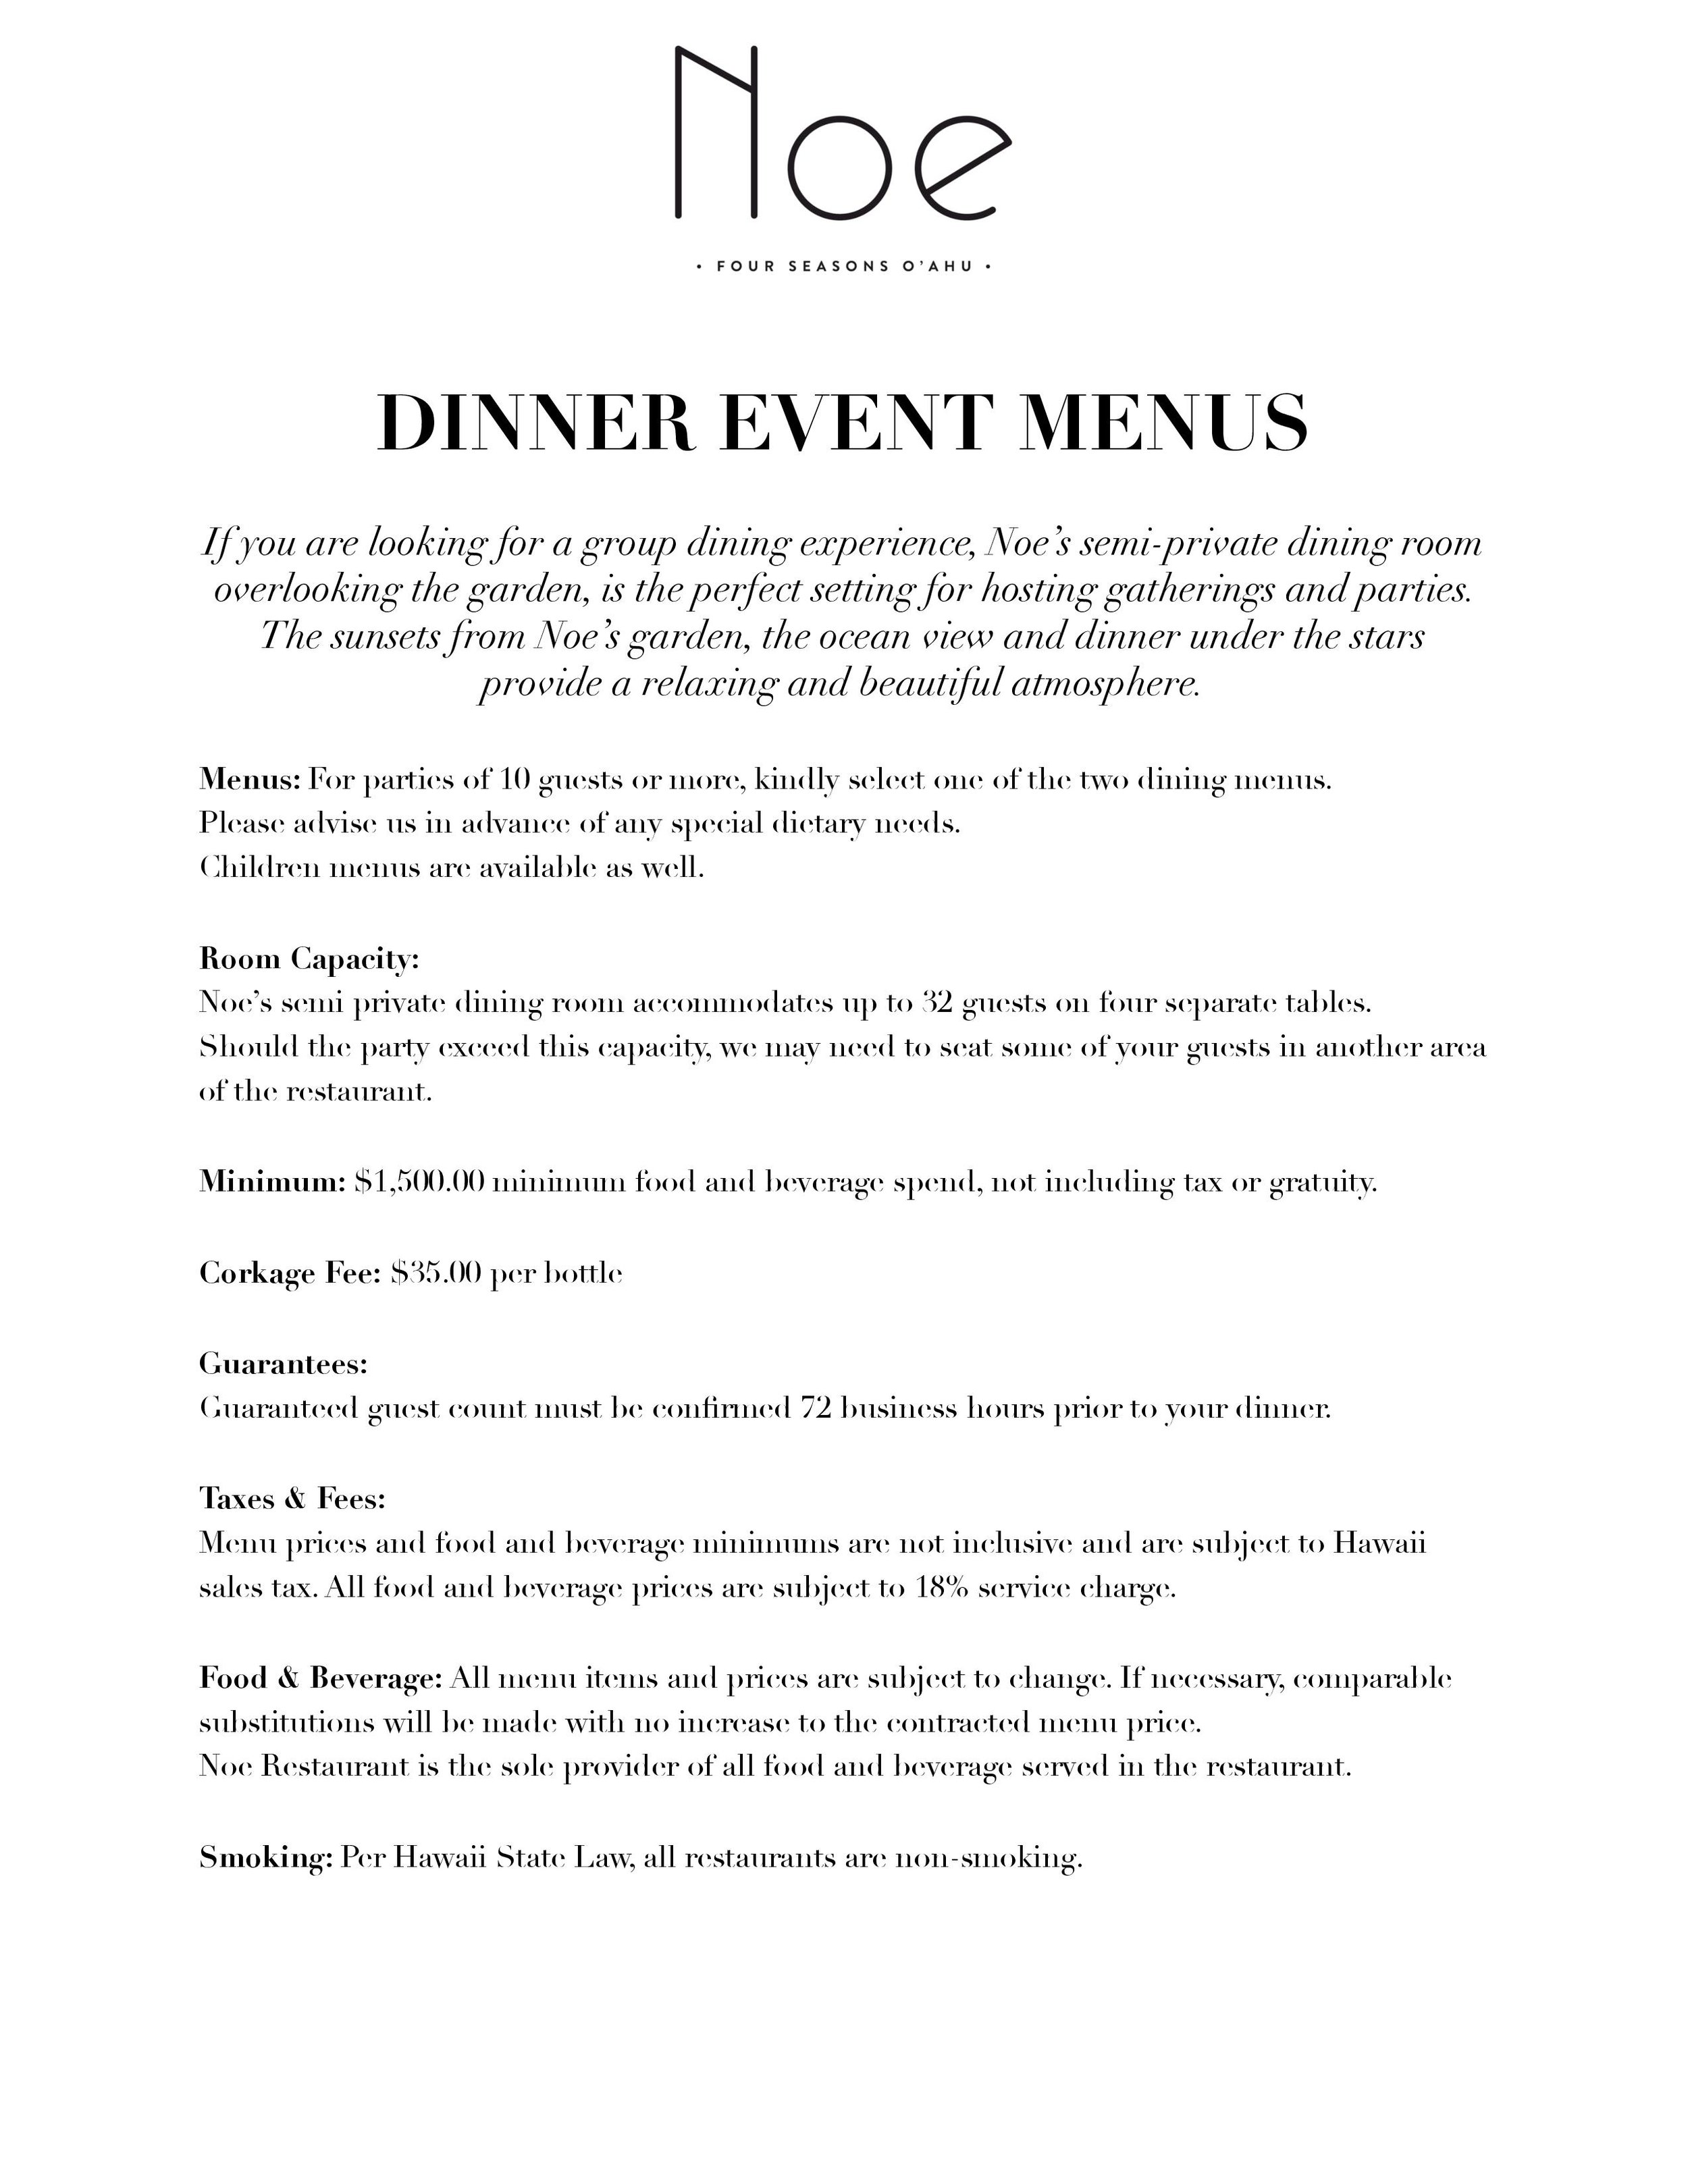 Large Parties Menu-page-001.jpg